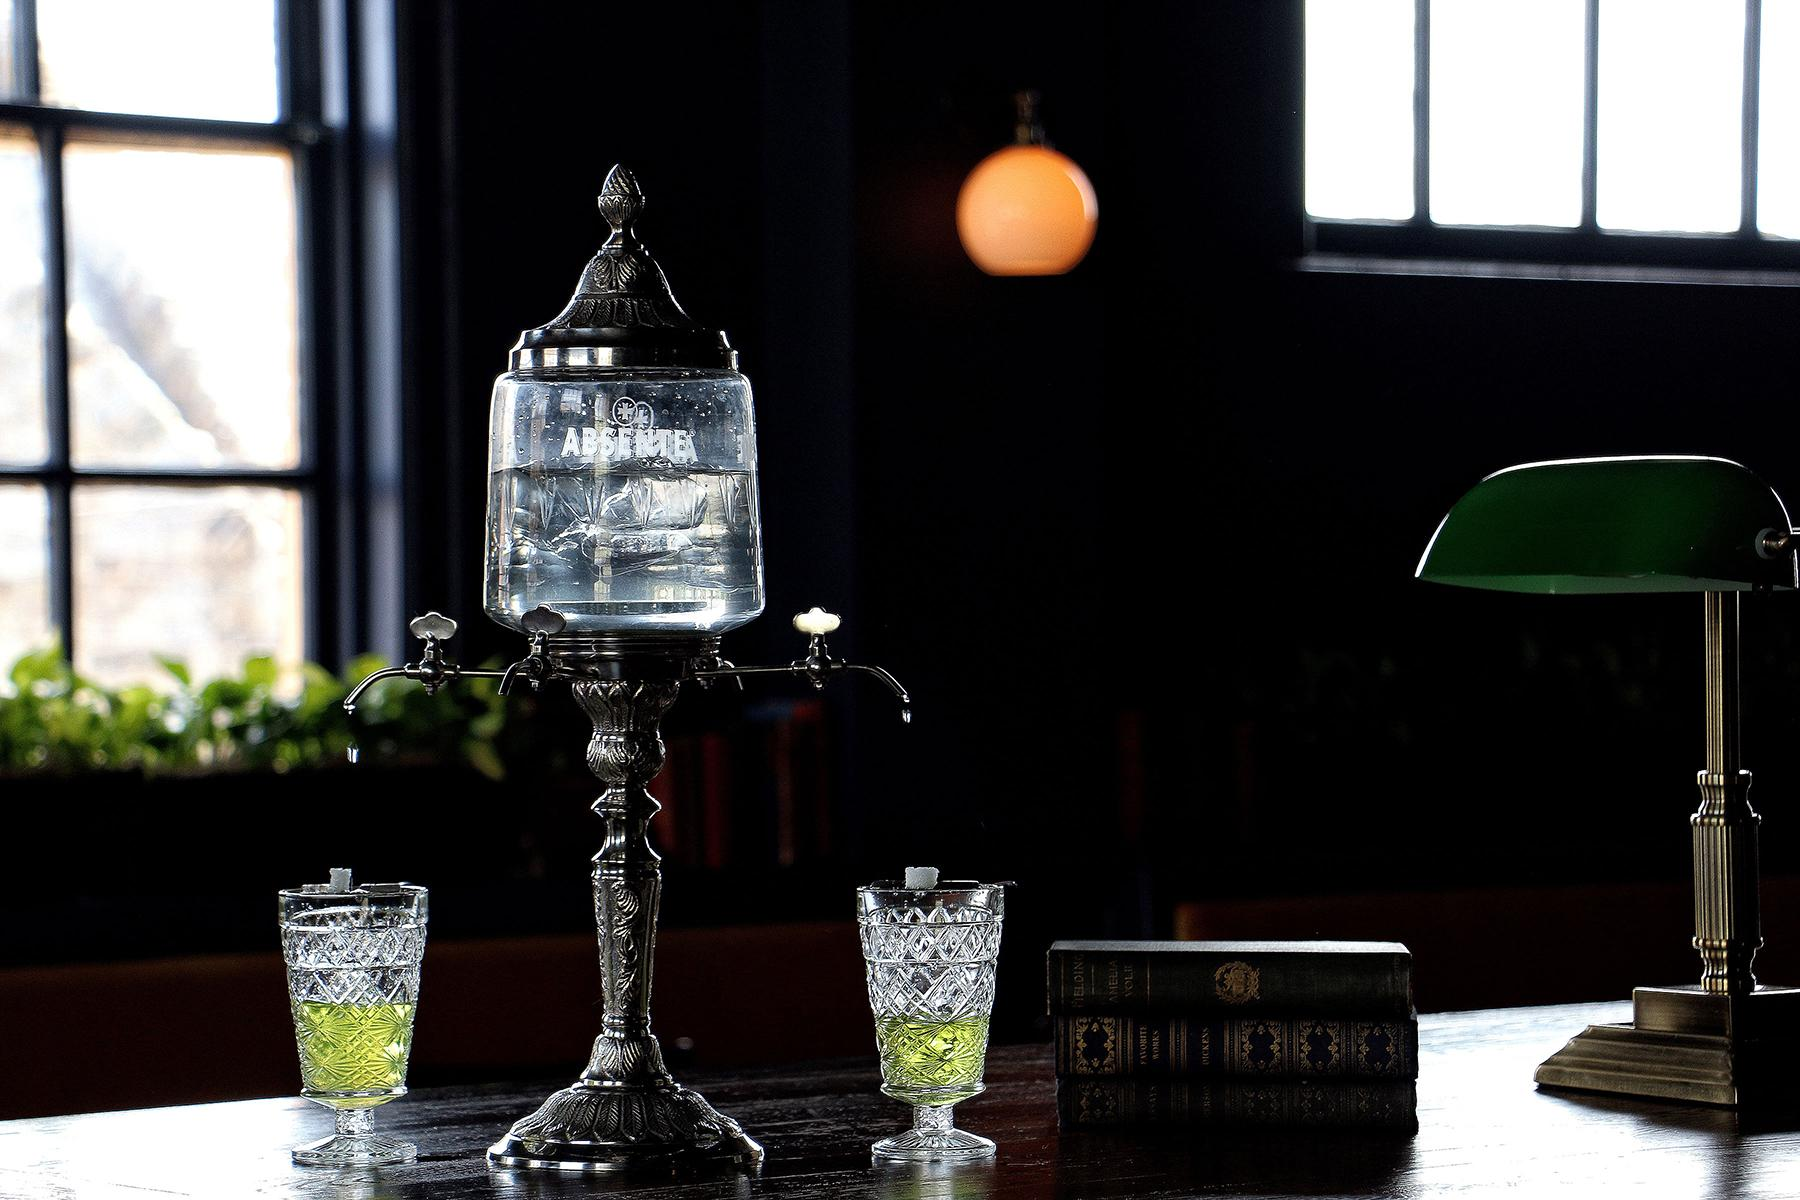 "Absinthe Drip: The classic presentation of the French liqueur. ""From her sacred groves, with maniac step the Pythian Laura moves, full on her lips, and fury in her eyes, strong writhe her limbs, and her wild dishevell'd hair, starts from her laurel wreath, and swims in air."" (Image: Jai Williams)"